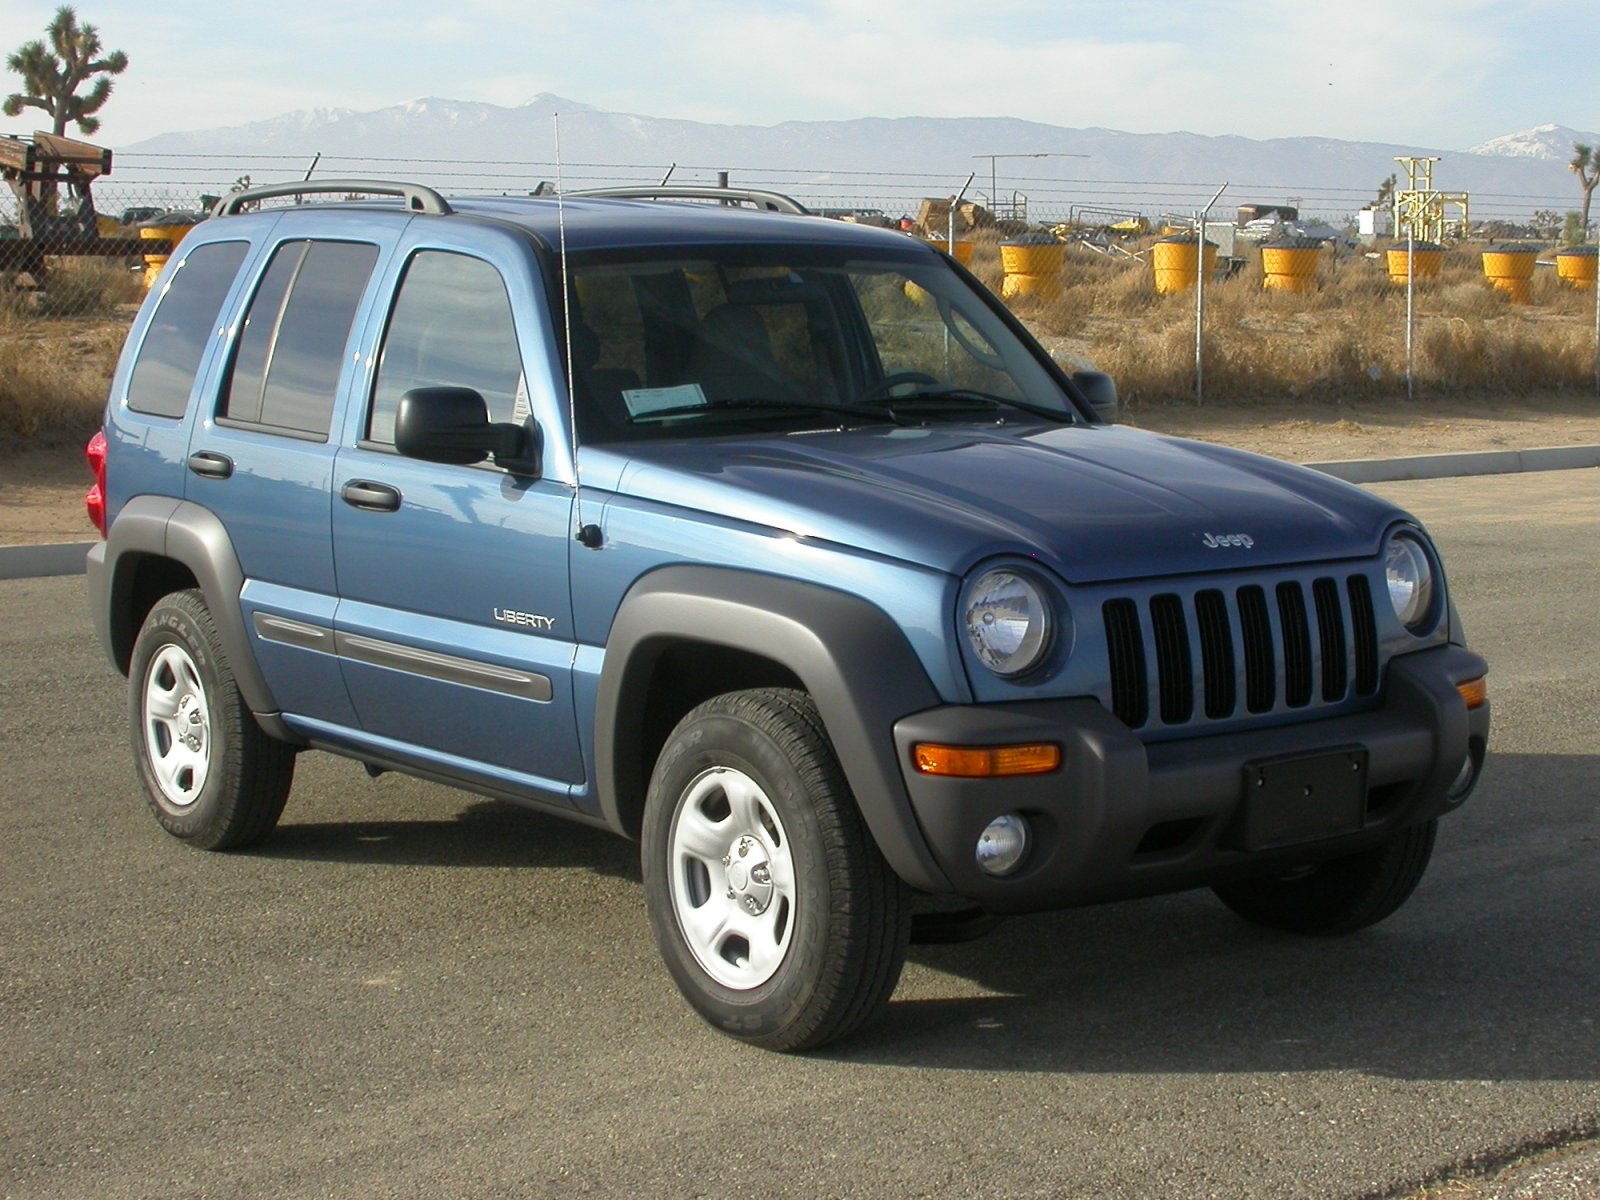 2017 Jeep Cherokee Owners Manual >> 2014 Jeep Liberty | Autos Post